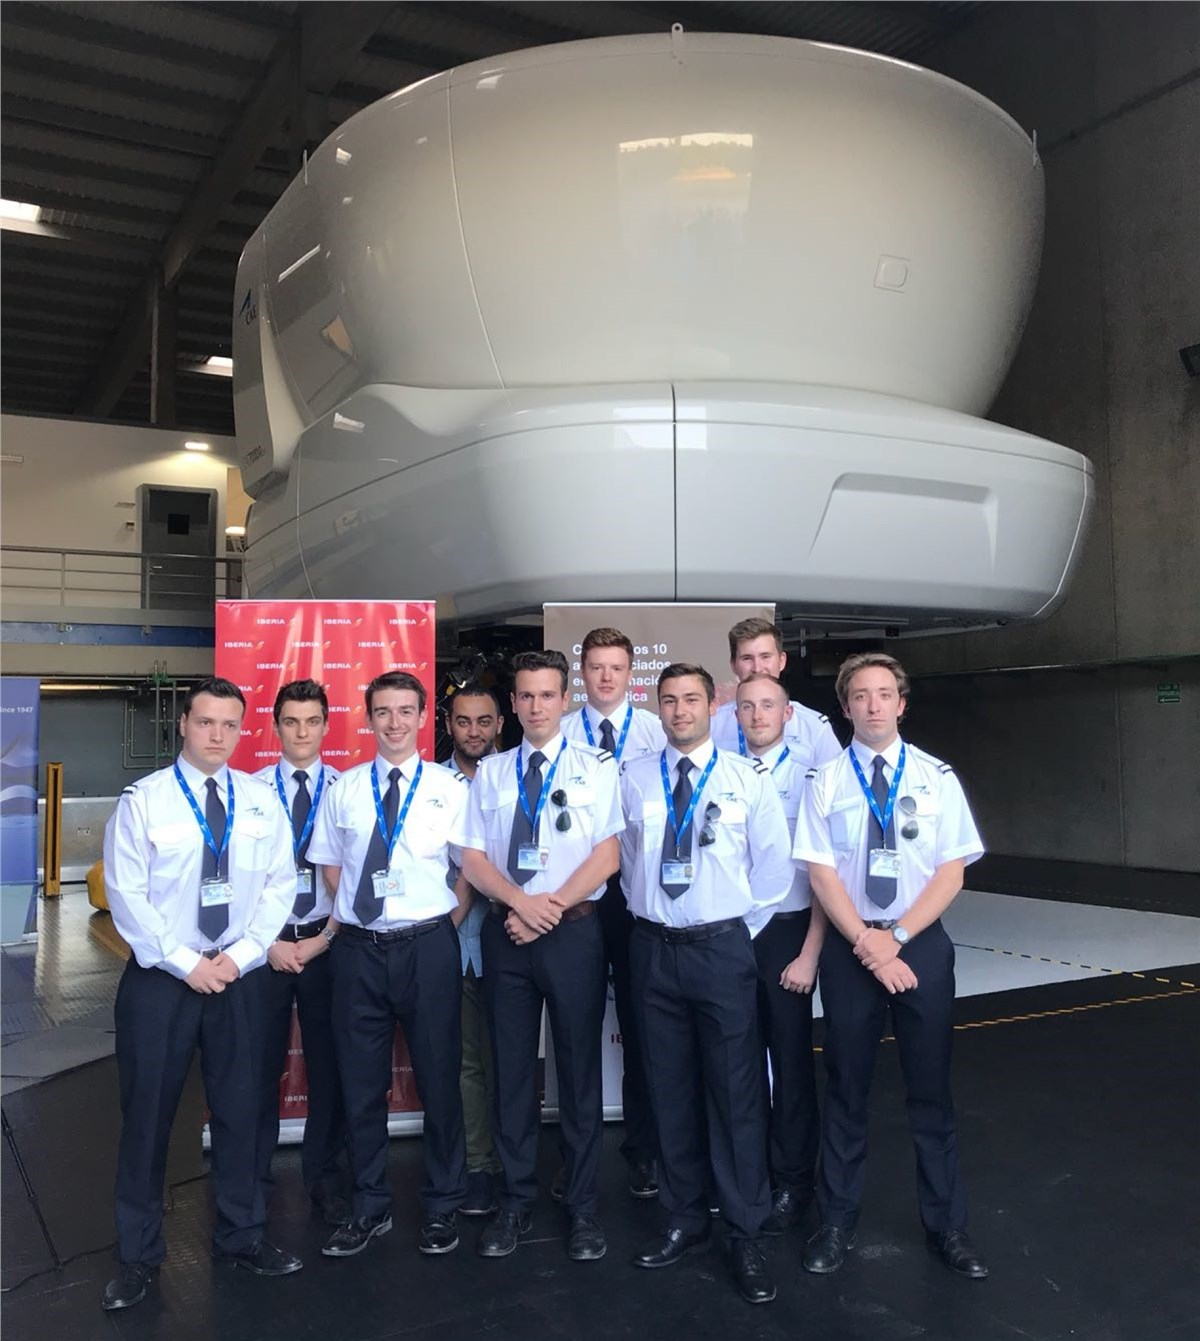 22f6709797 CAE announced today that it is growing its cadet intake at its leading  training centre CAE Madrid. In May 2017, CAE announced the expansion of its  cadet ...